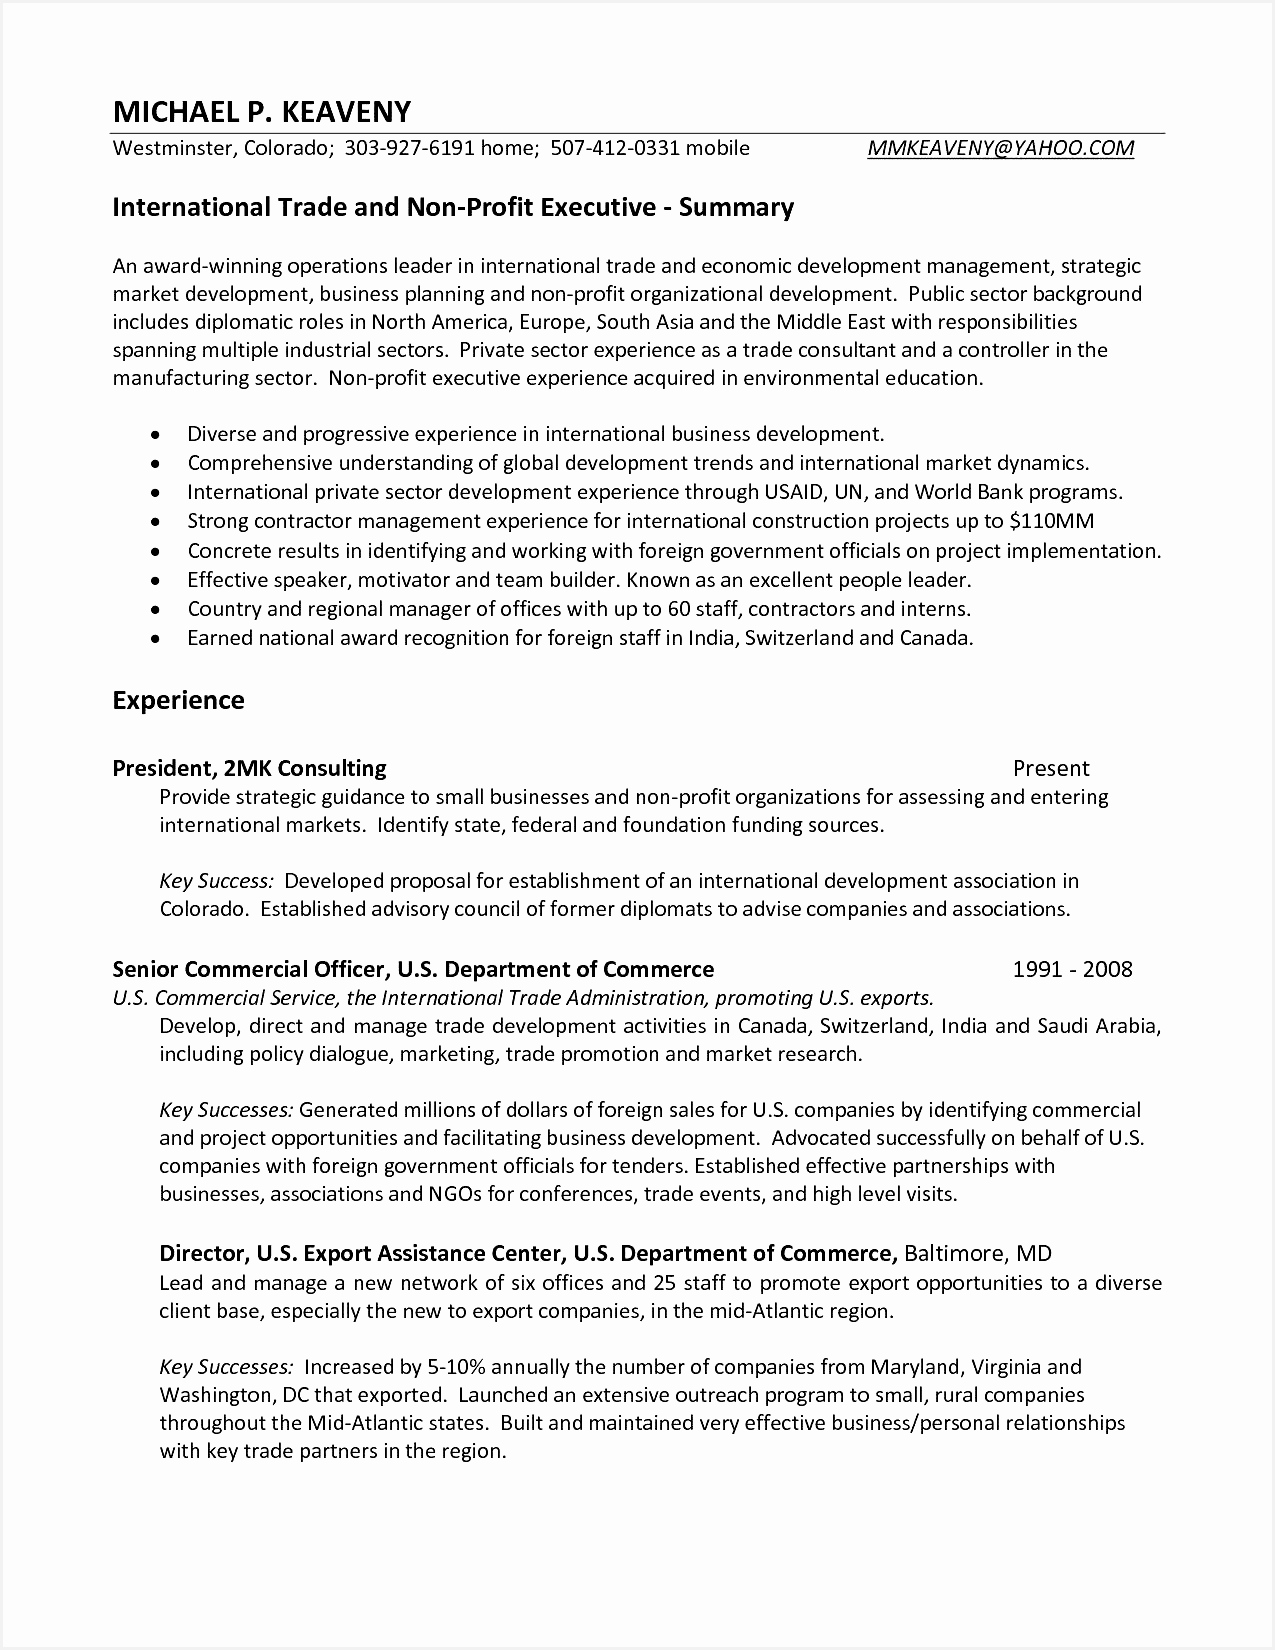 Resume Template For Students Unique Propsal Template Unique American Resume Sample New Student Resume 0d16501275